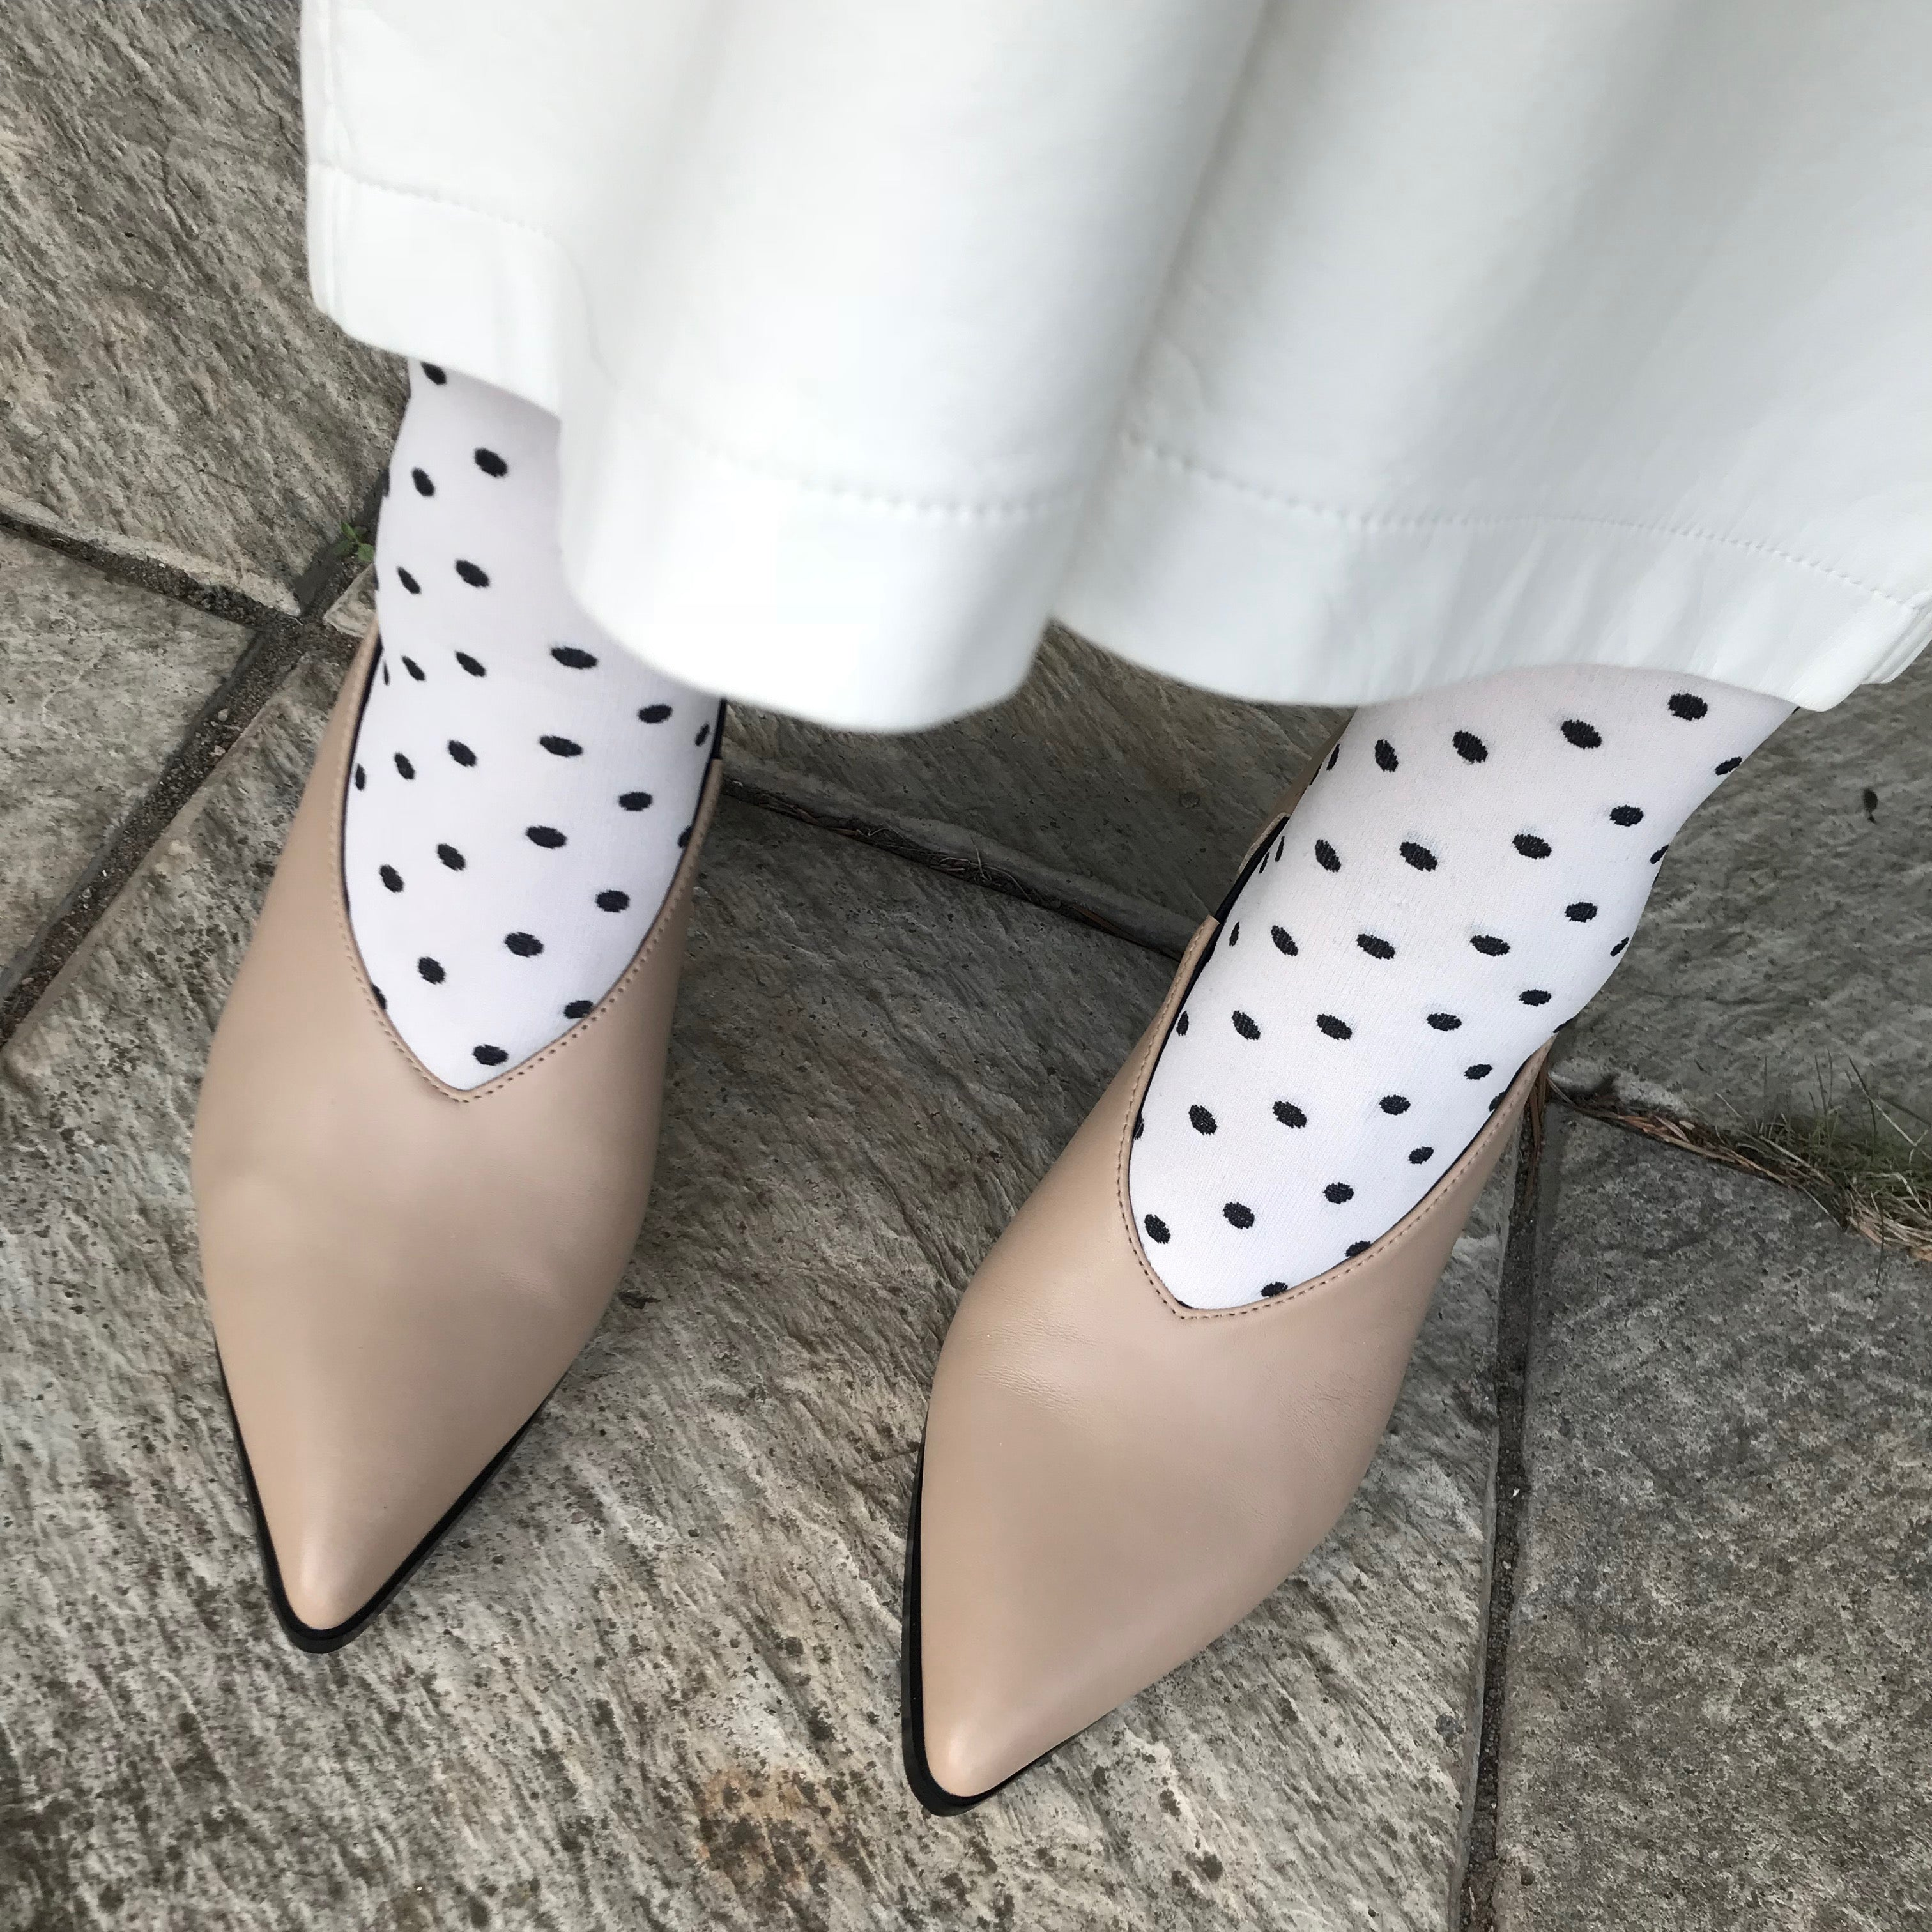 Roach Killer V-cut pump from Swedish shoe brand ANNY NORD.  A classic shoe with a modern twist. Here styled with polka dotted socks and leather skirt.